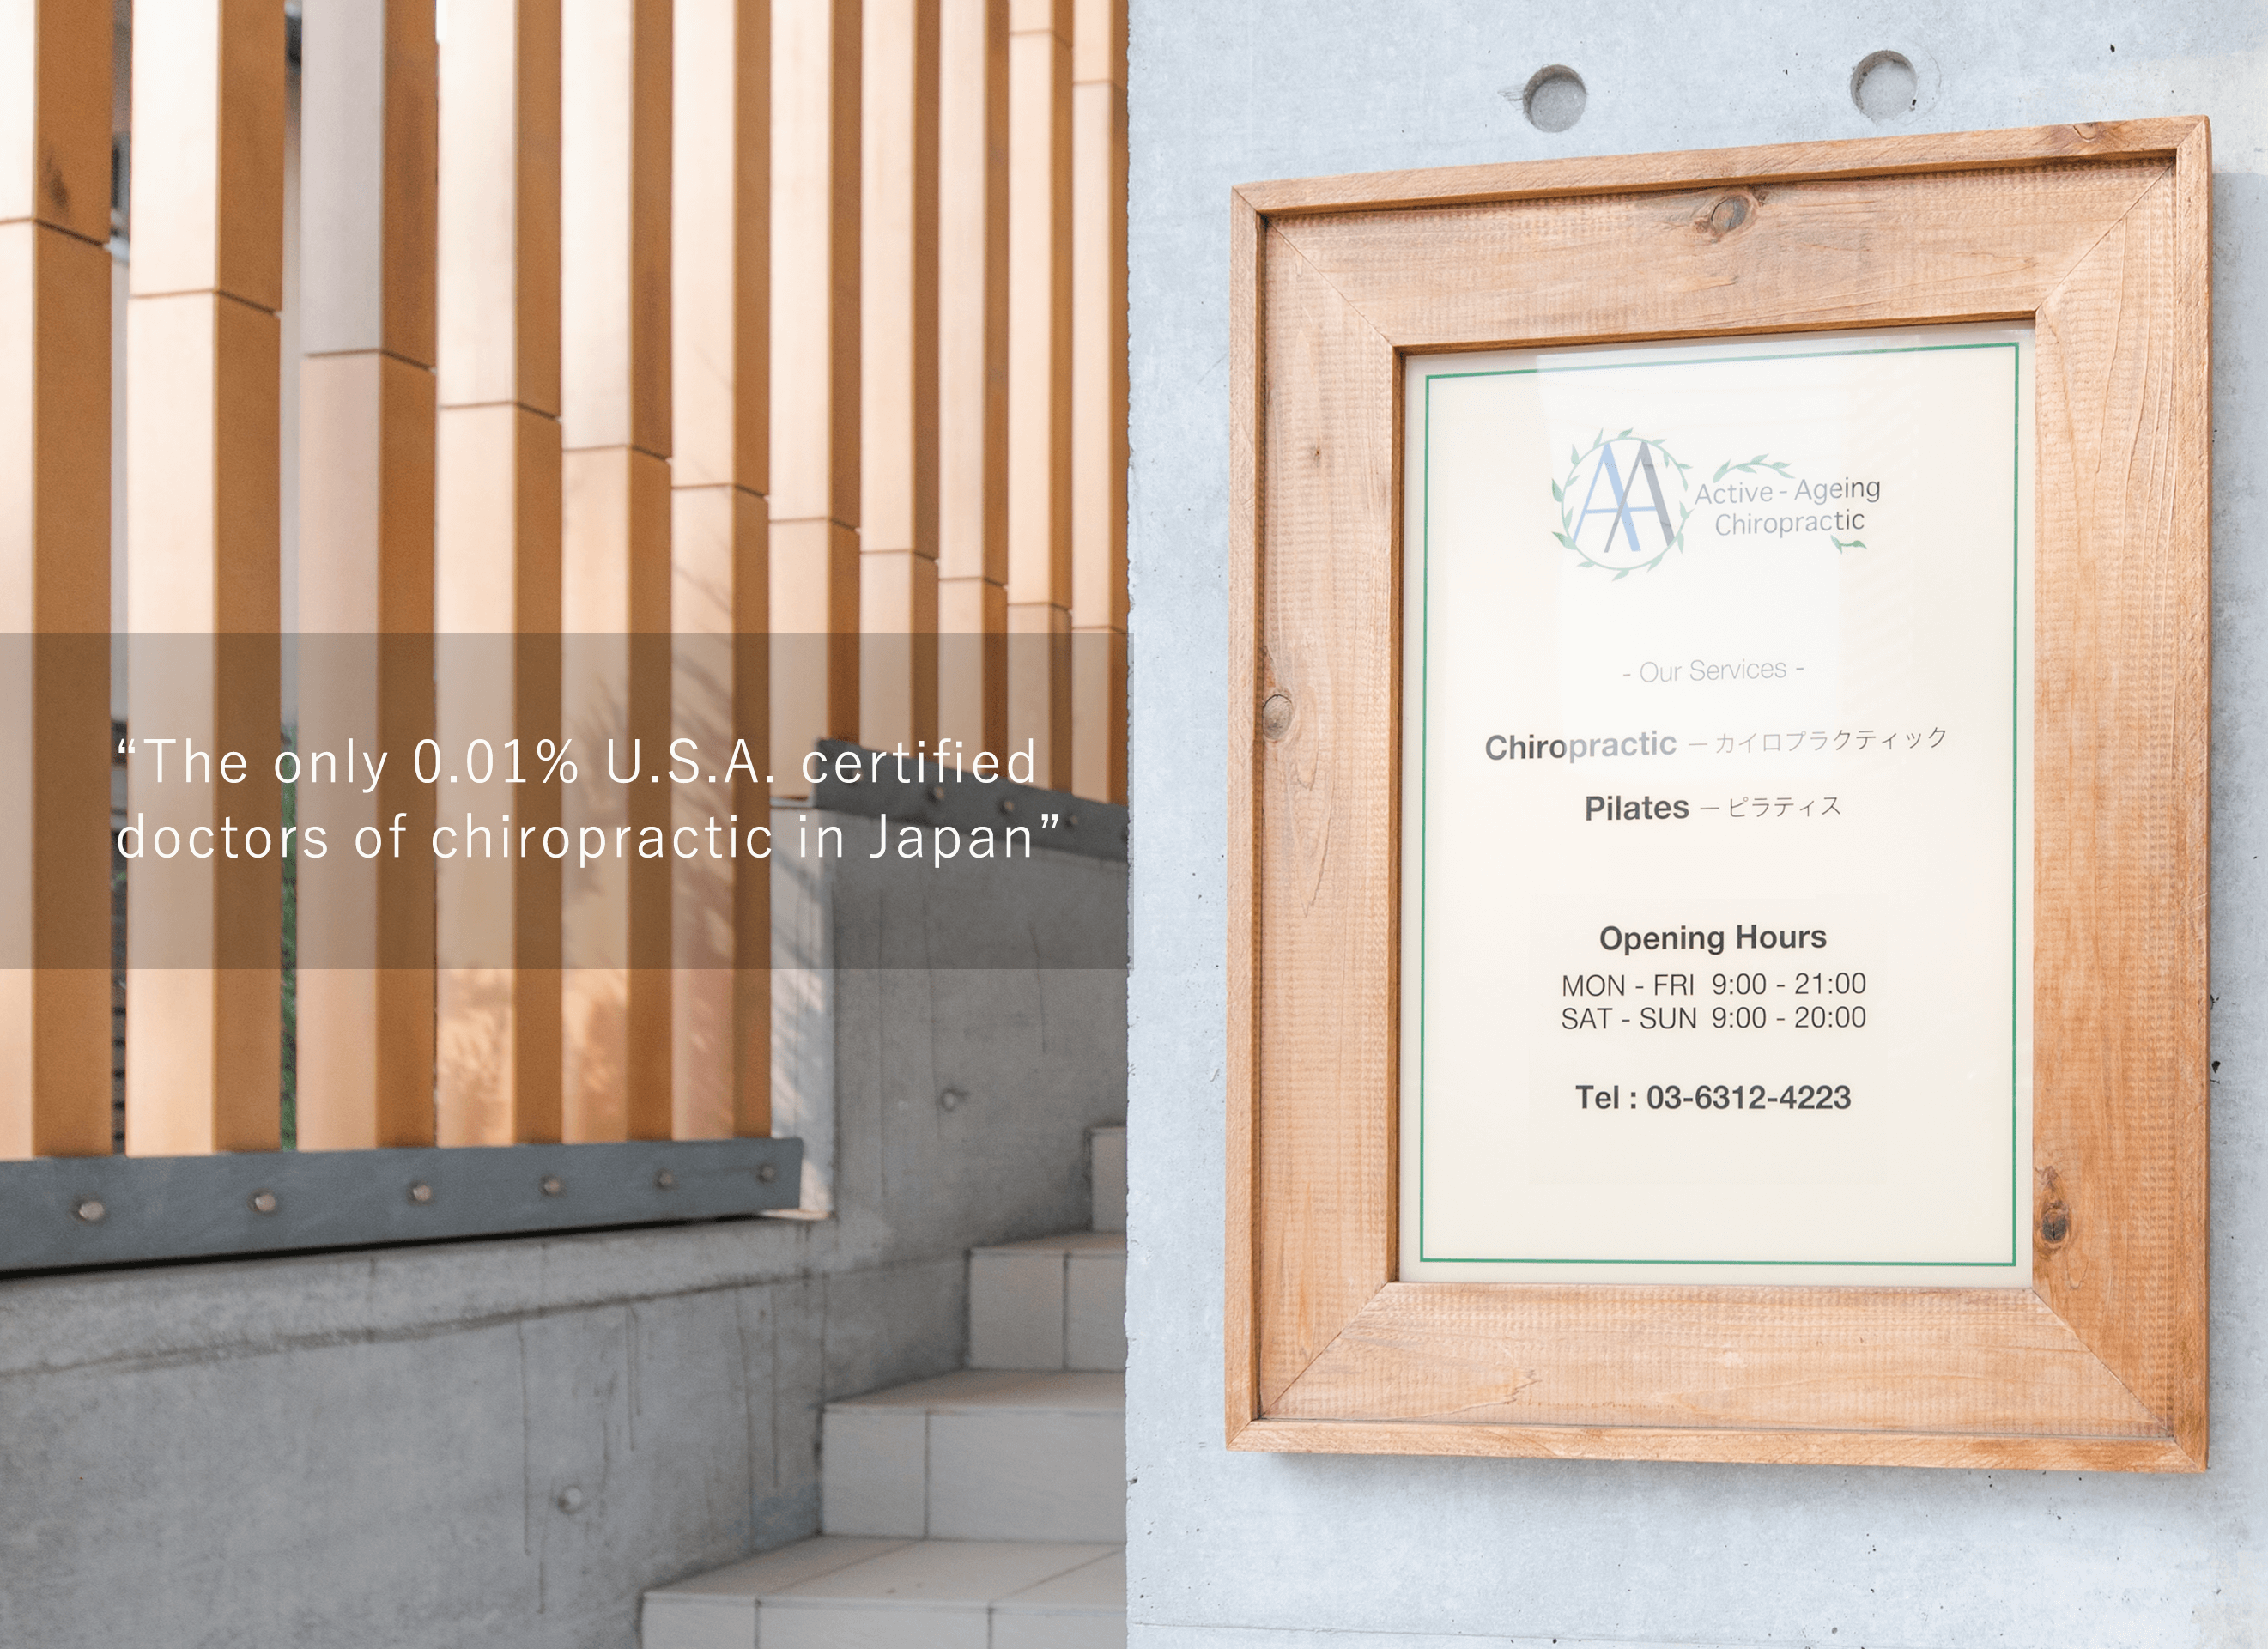 The only 0.0.1% U.S.A. certified doctors of chiropractic in Japan